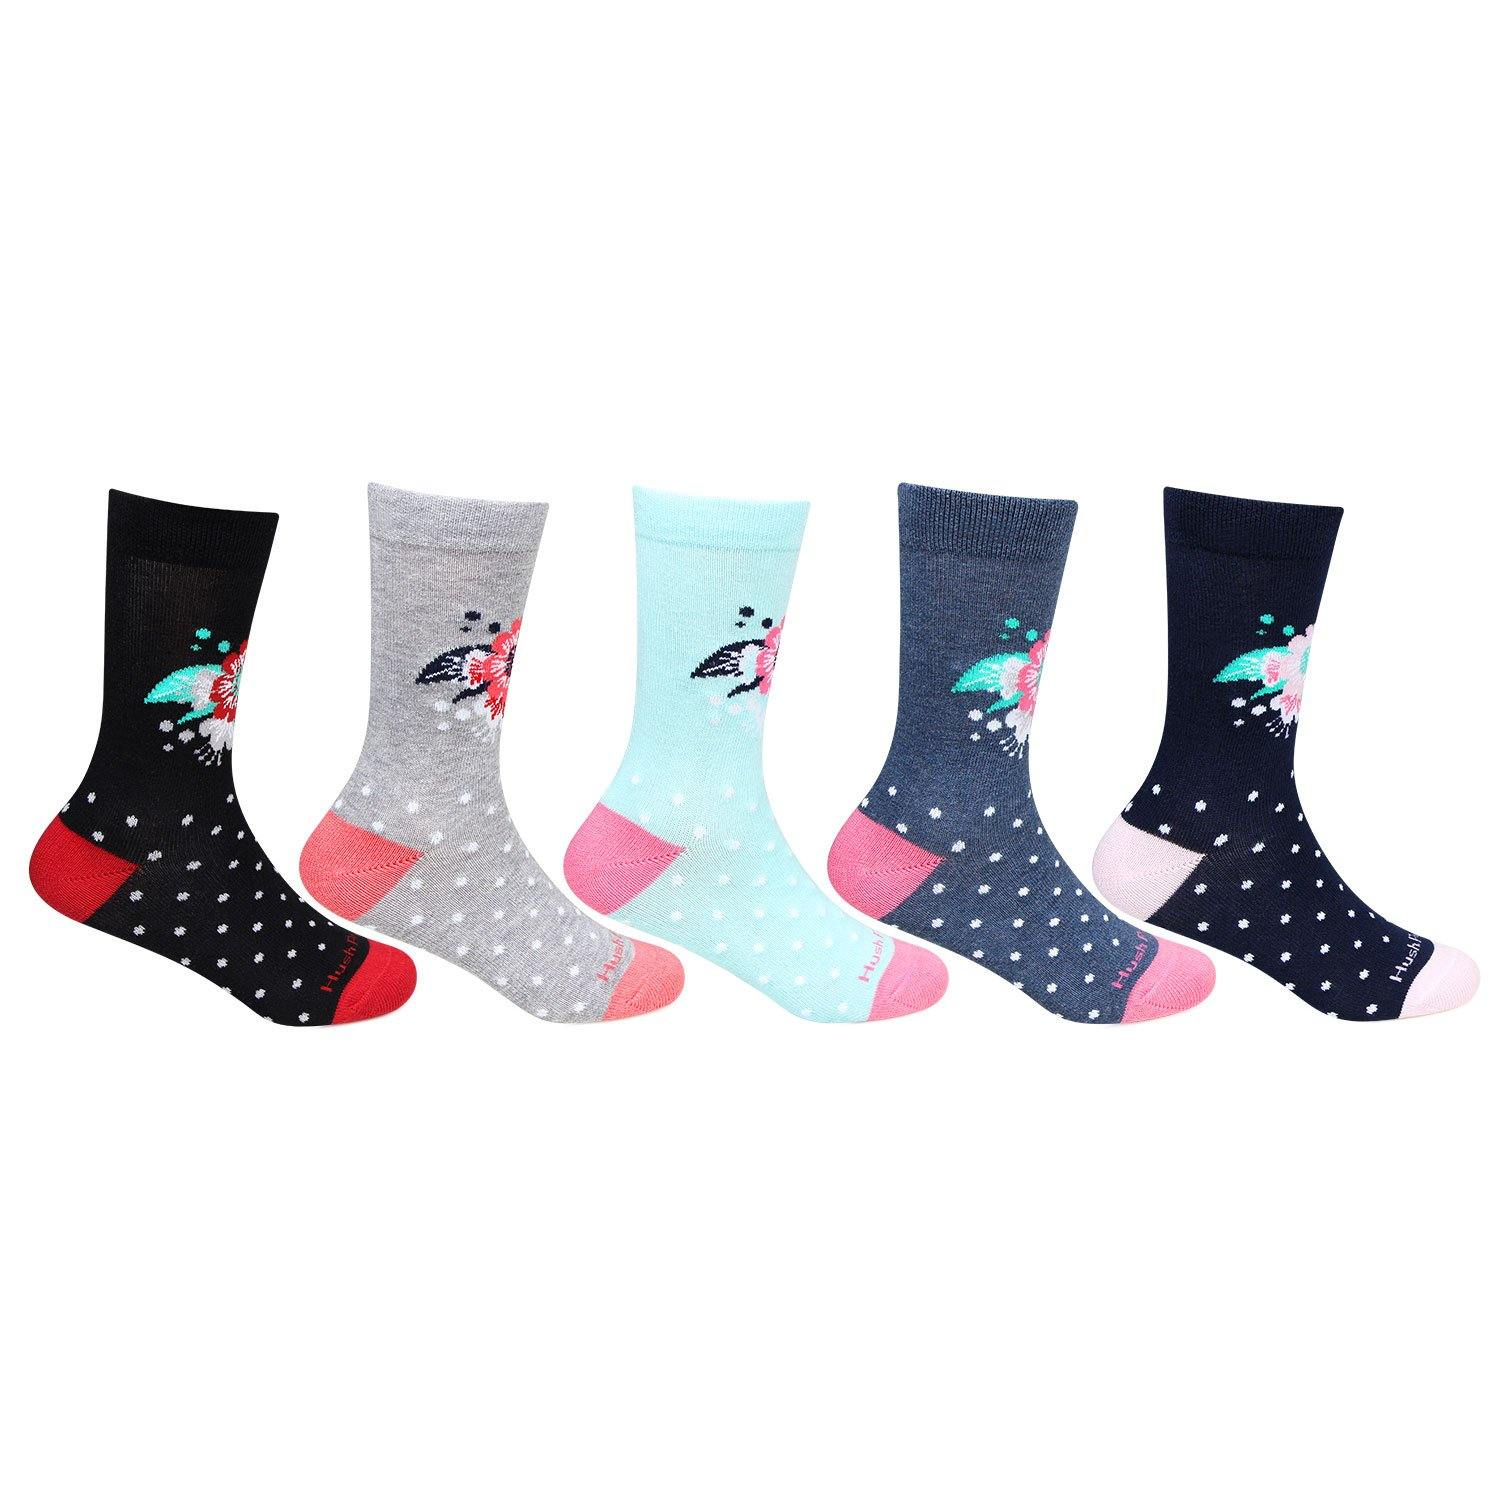 Hush Puppies Cute Floral - Prints Cotton Crew Socks - Pack Of 5